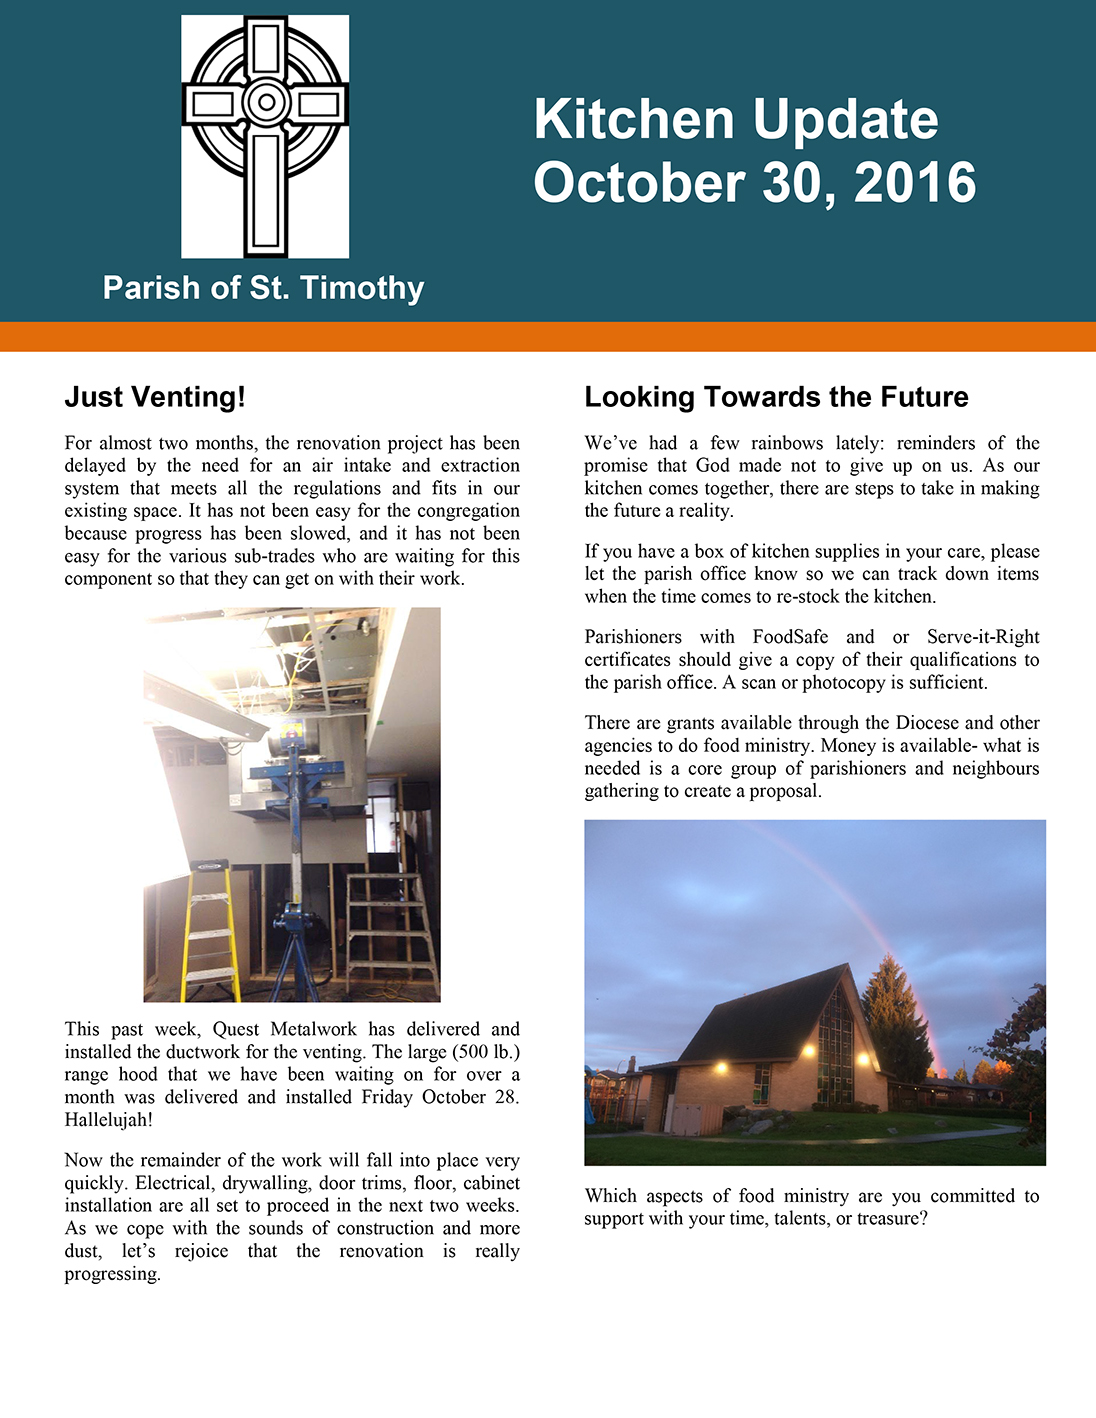 Newsletter: Kitchen Update - October 30